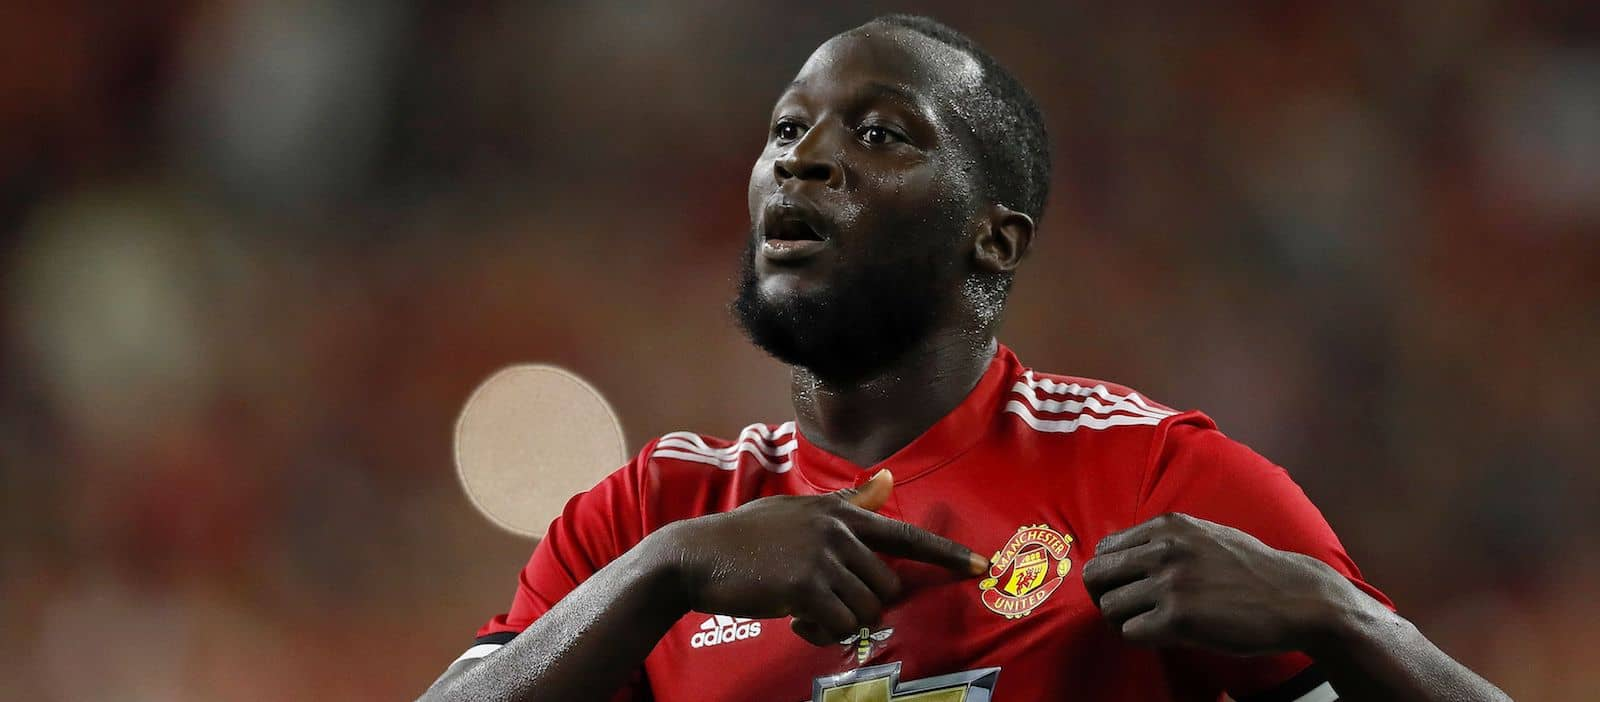 Will Romelu Lukaku succeed at Manchester United? An Everton fan's perspective on our new No.9